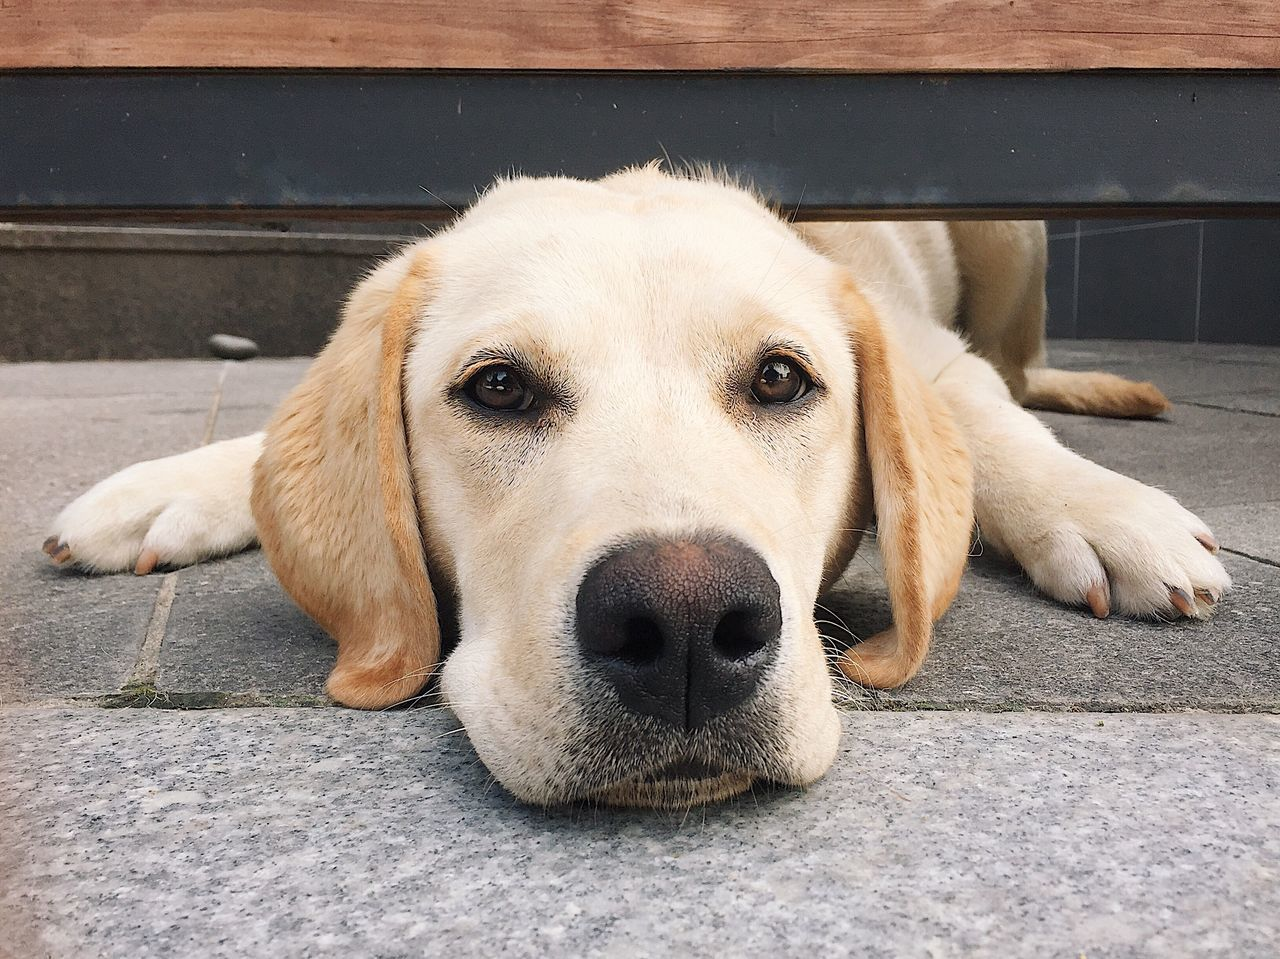 Puppy🐶 Puppy Doggy Dog Golden Retriever Dog Looking Under Gate Dog Head Dog Head Under A Door Pets One Animal Looking At Camera Animal Themes Close-up No People EyeEm Best Shots